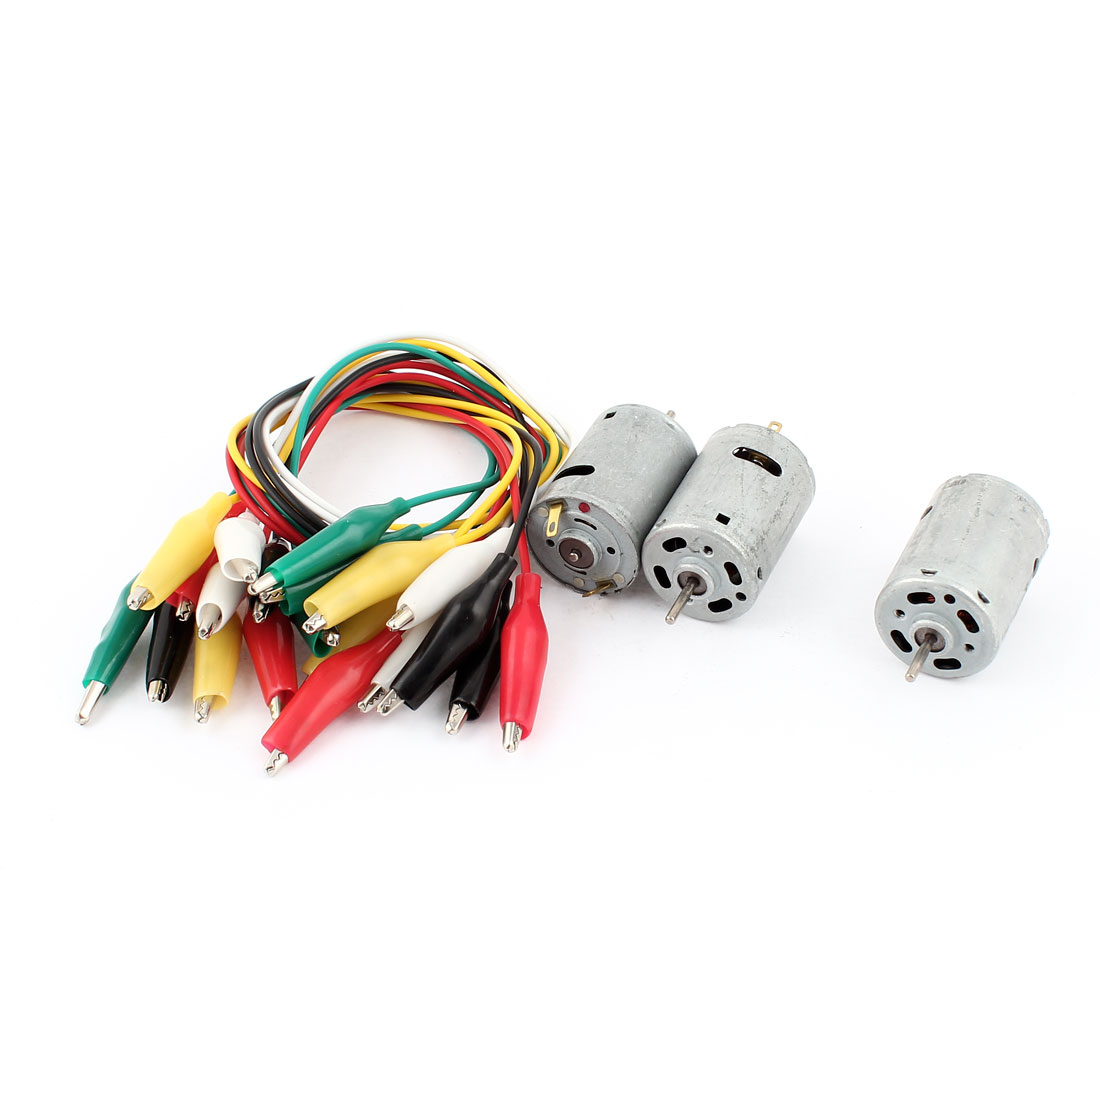 3 Pcs Metal Housing Motor 9000-15000RPM DC 6-12V + 10 Pieces Alligator Clip Wire